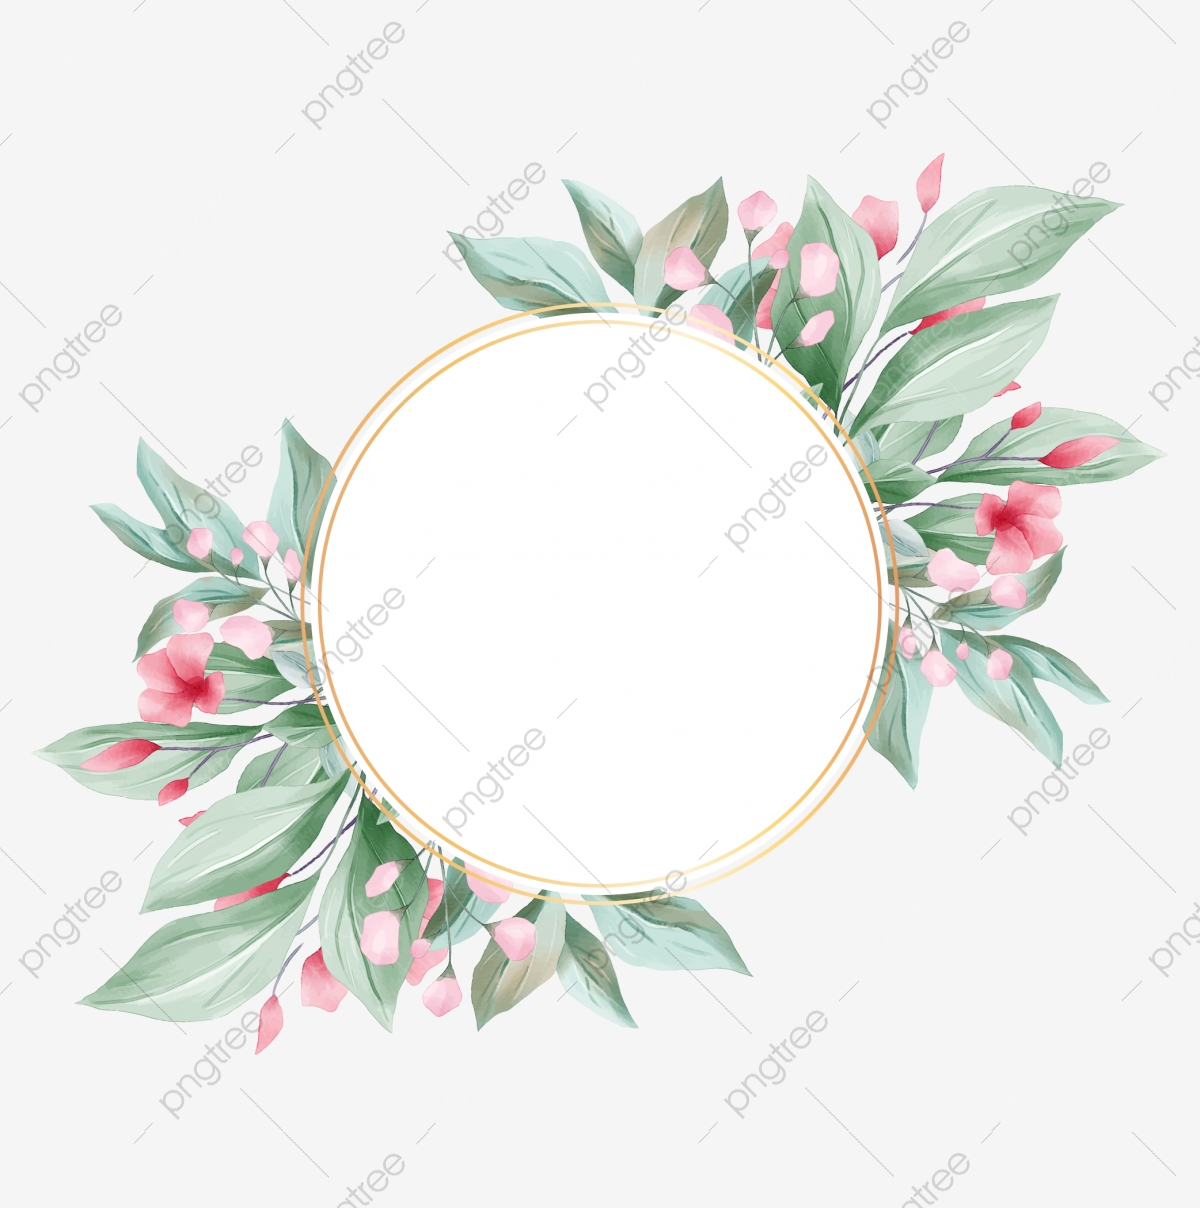 bingkai bunga bulat romantis dengan daun elegan pernikahan undangan bunga bunga png transparan gambar clipart dan file psd untuk unduh gratis https id pngtree com freepng romantic round floral frame with elegant leaves 5163863 html